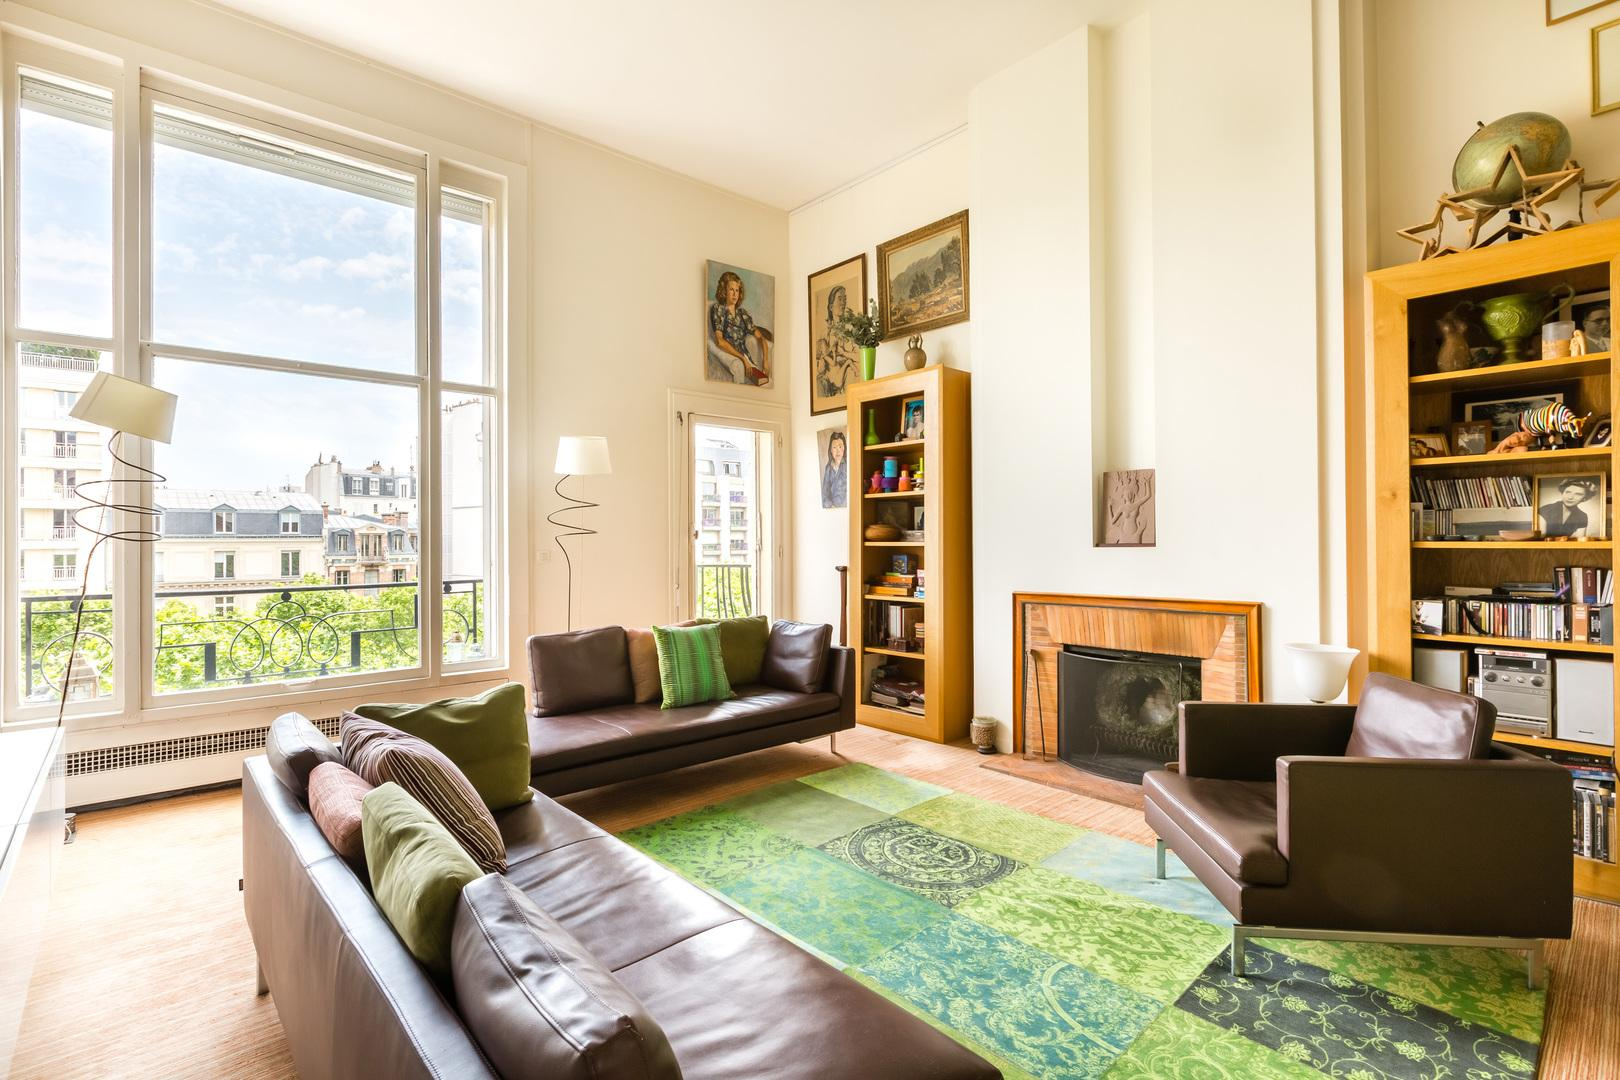 Property Image 1 - Colourful Chic Apartment with artwork by Eiffel Tower